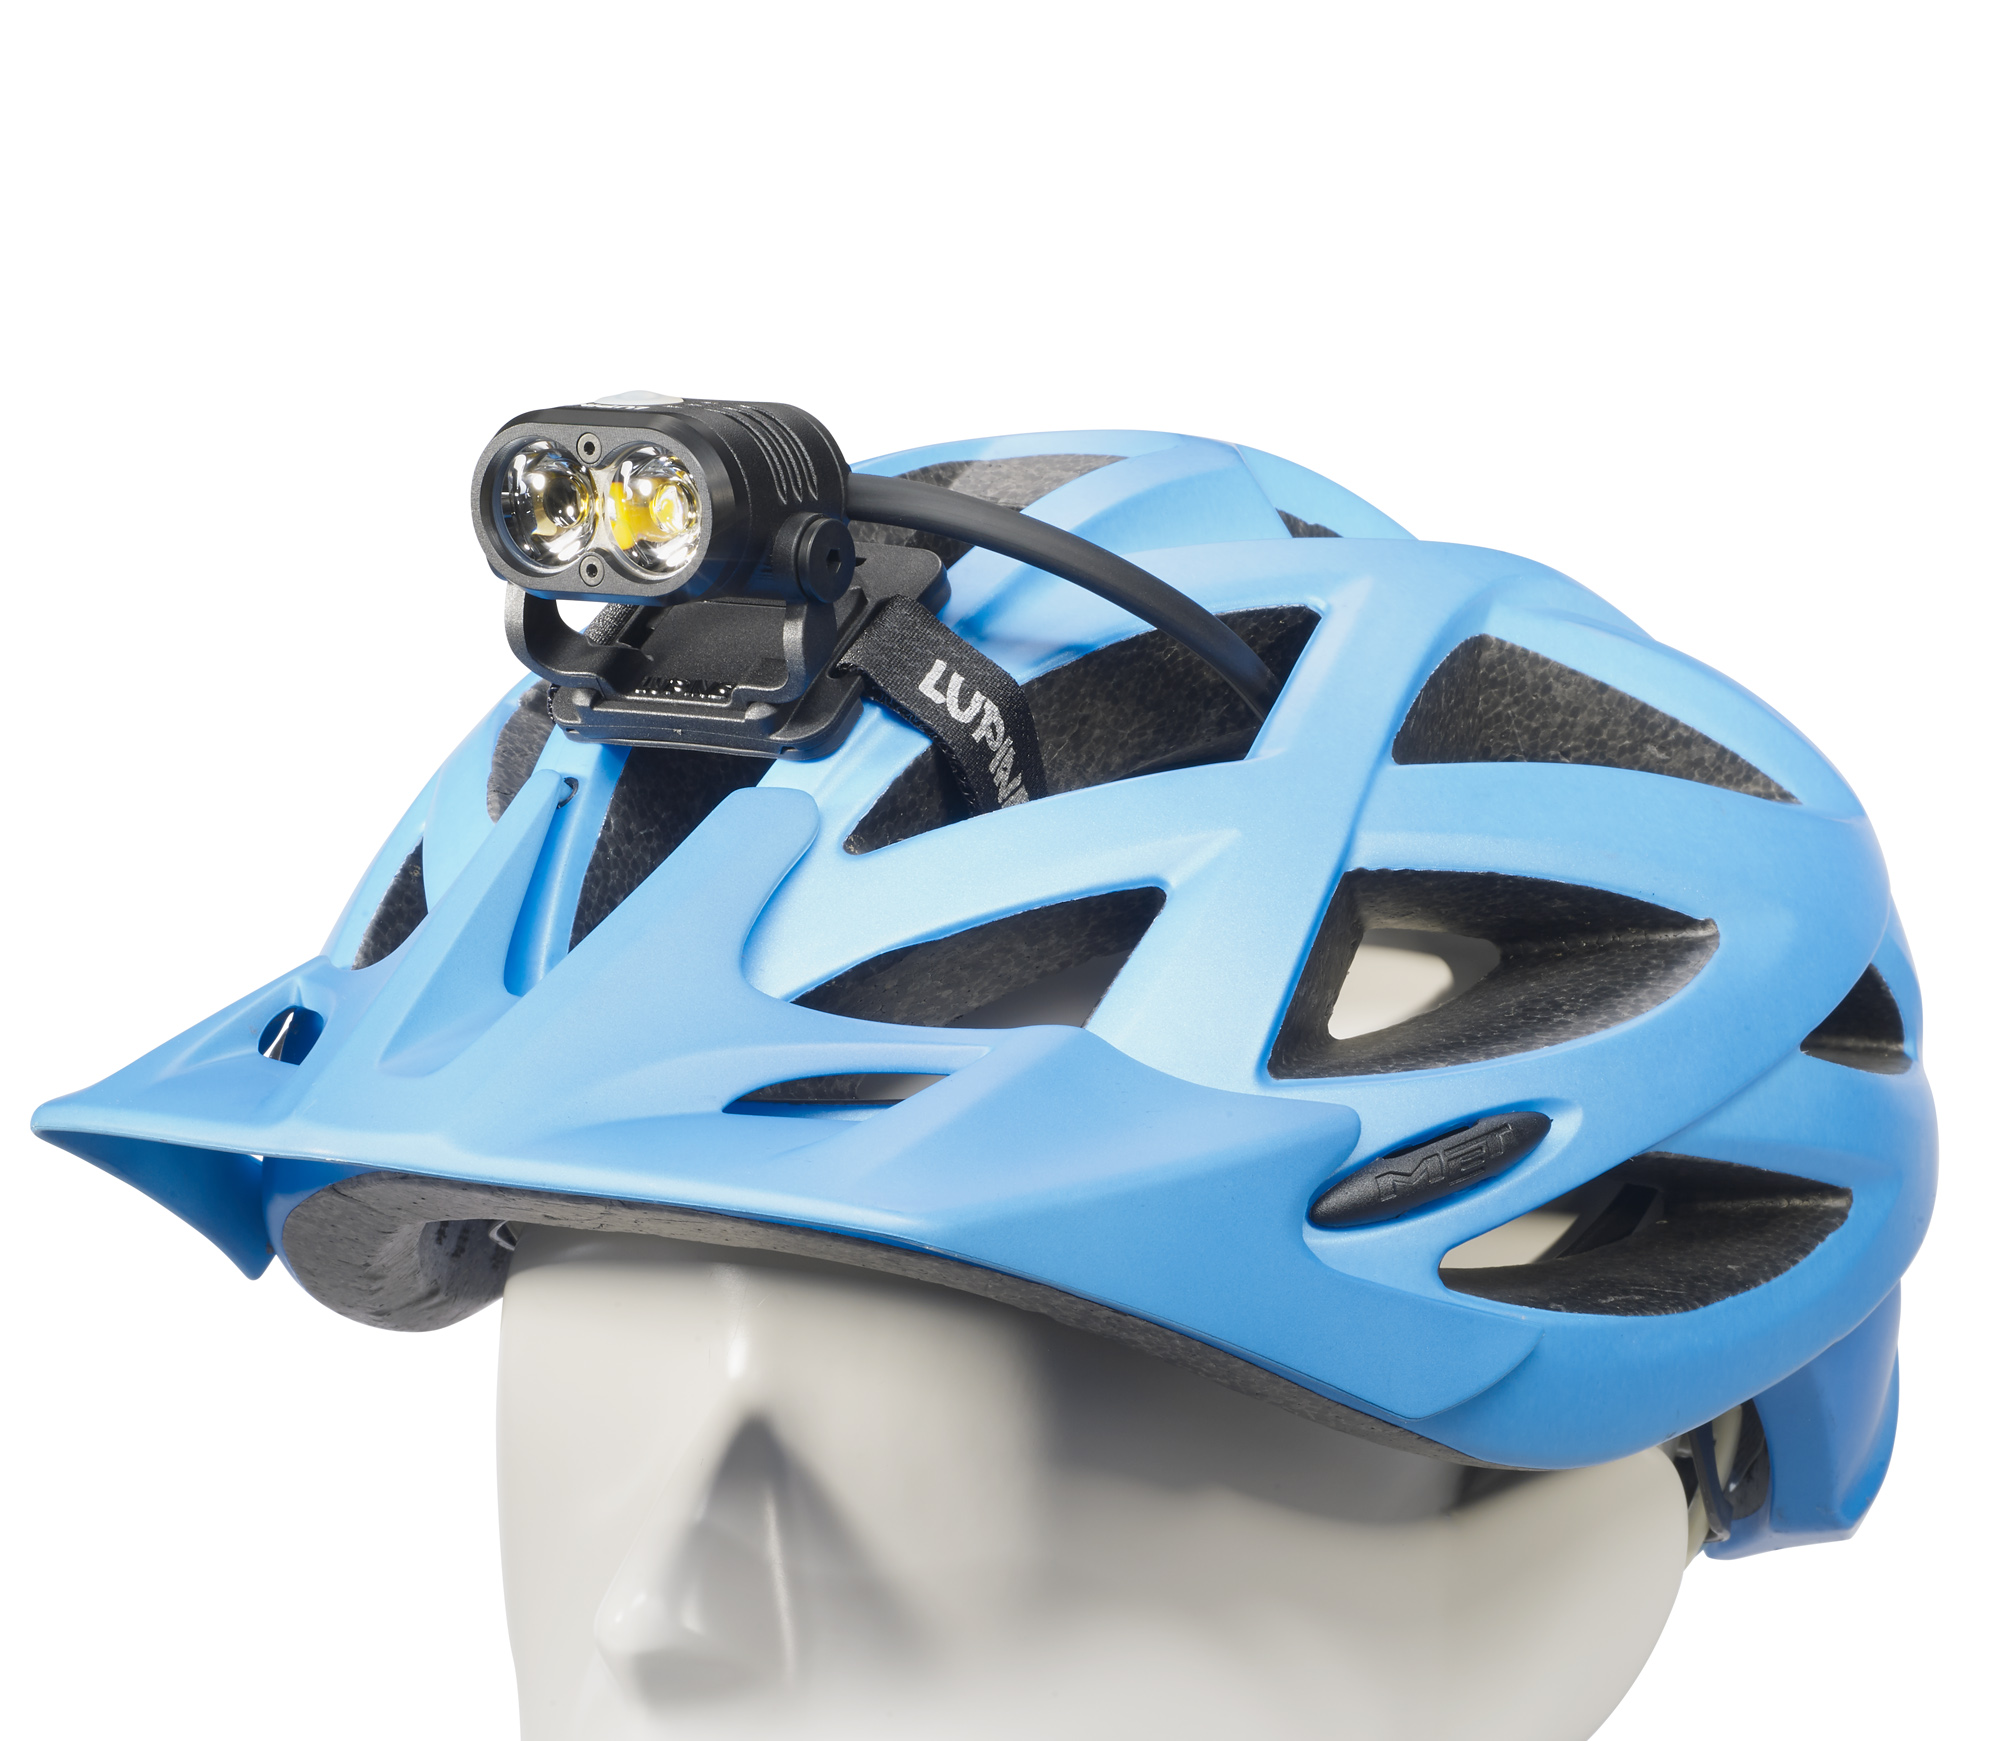 Piko Lamp Head helmet mount with FrontClick